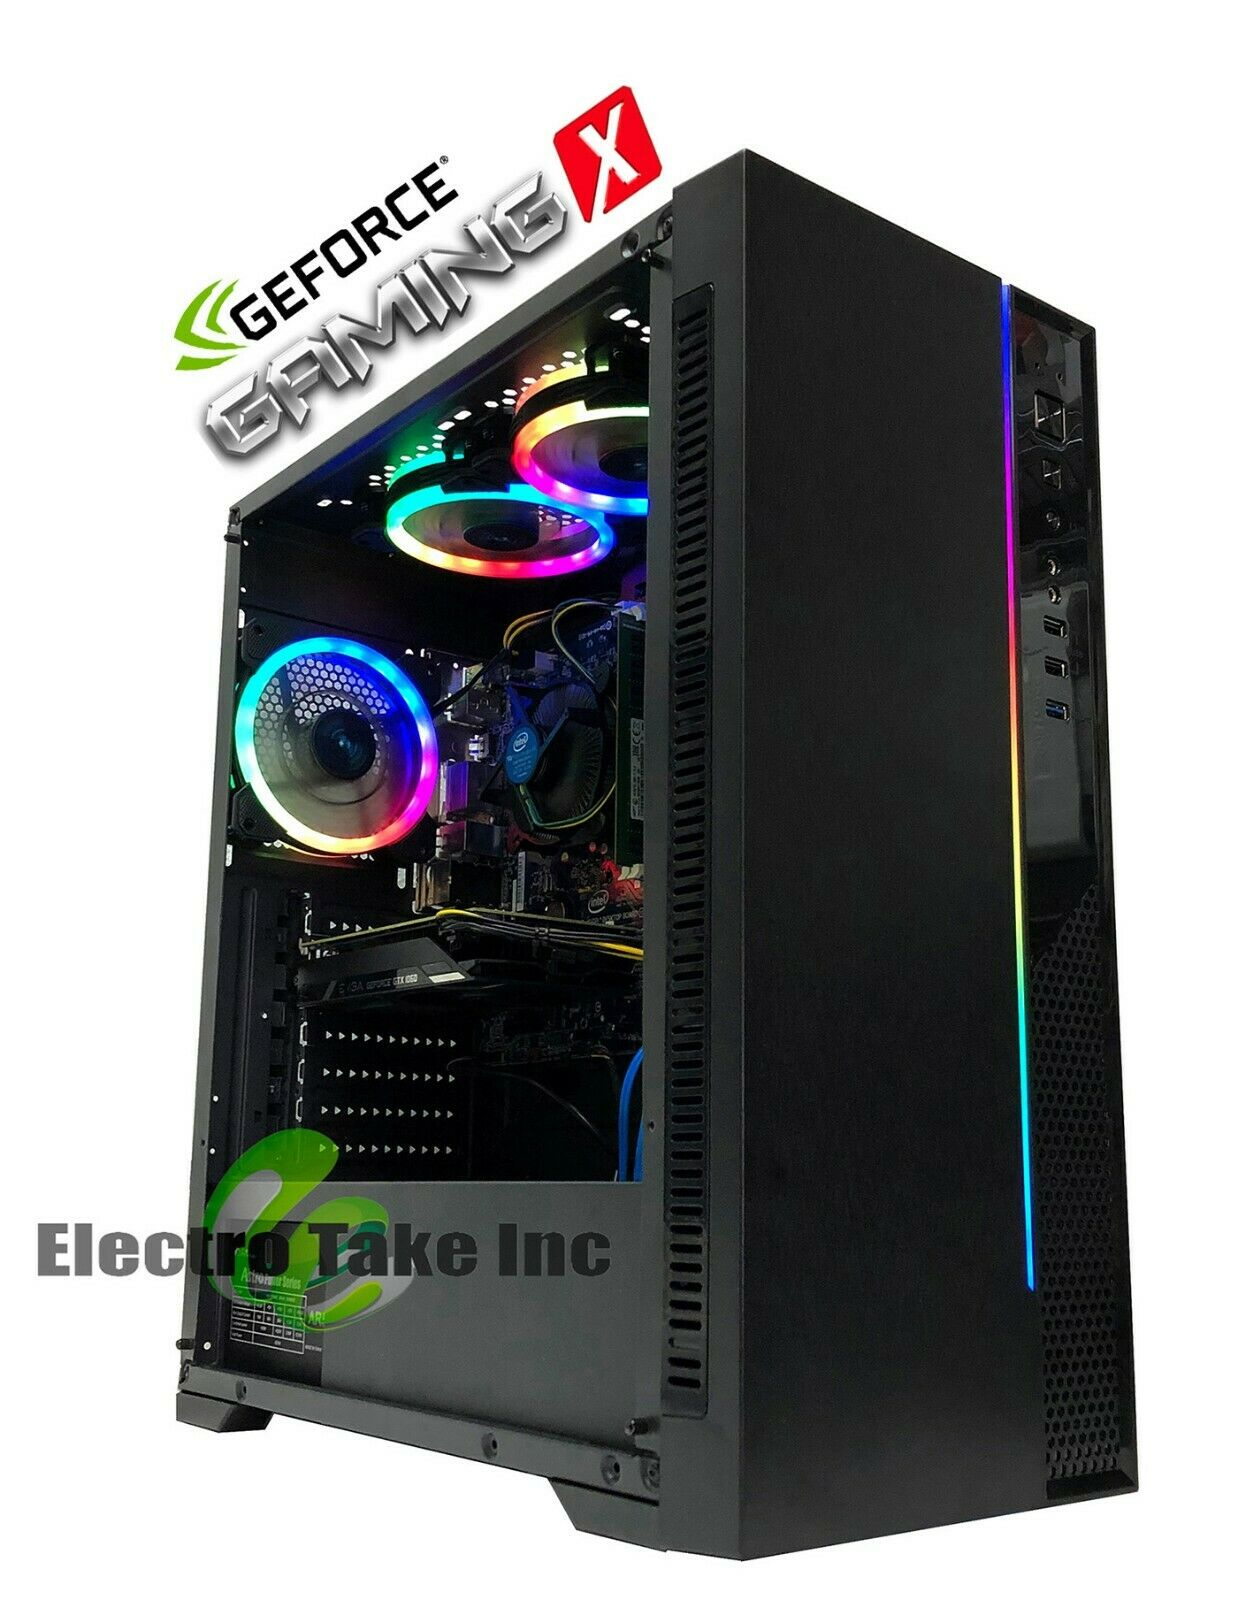 INTEL CORE i7 GAMING PC COMPUTER DESKTOP✔120SSD✔NVIDIA G